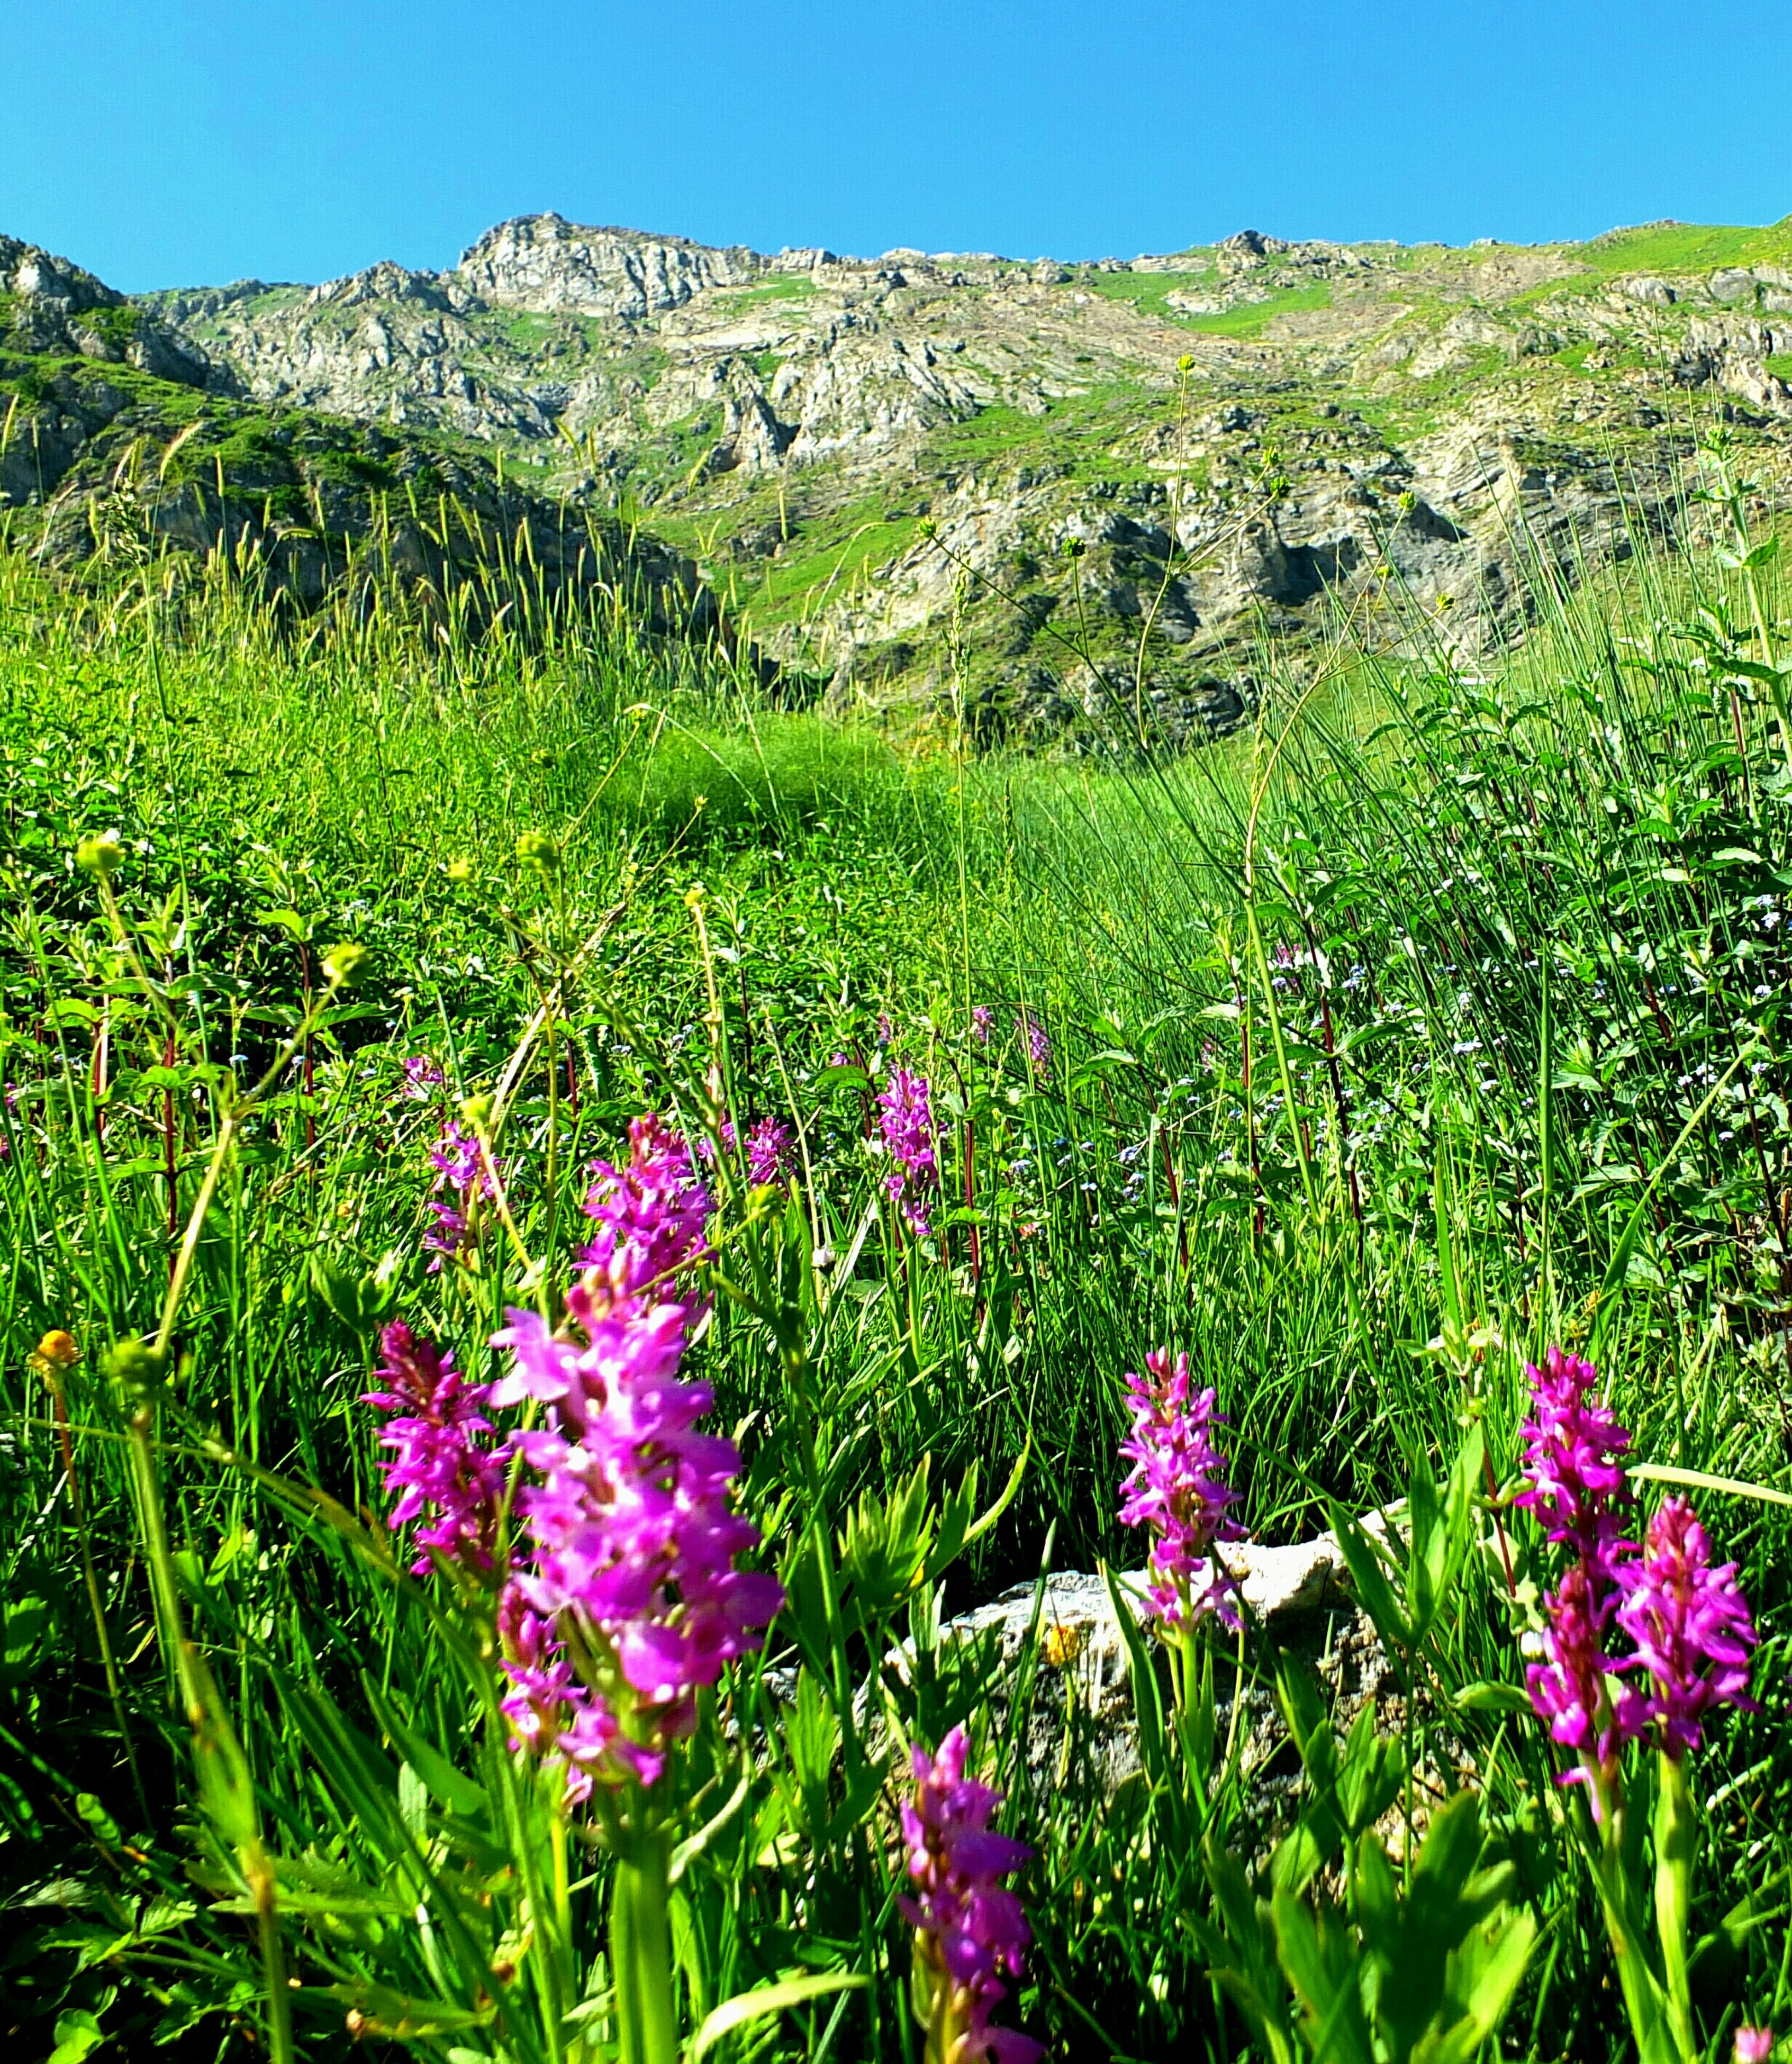 flower, freshness, growth, beauty in nature, plant, fragility, blooming, field, nature, petal, grass, landscape, clear sky, wildflower, tranquil scene, purple, flower head, in bloom, tranquility, green color